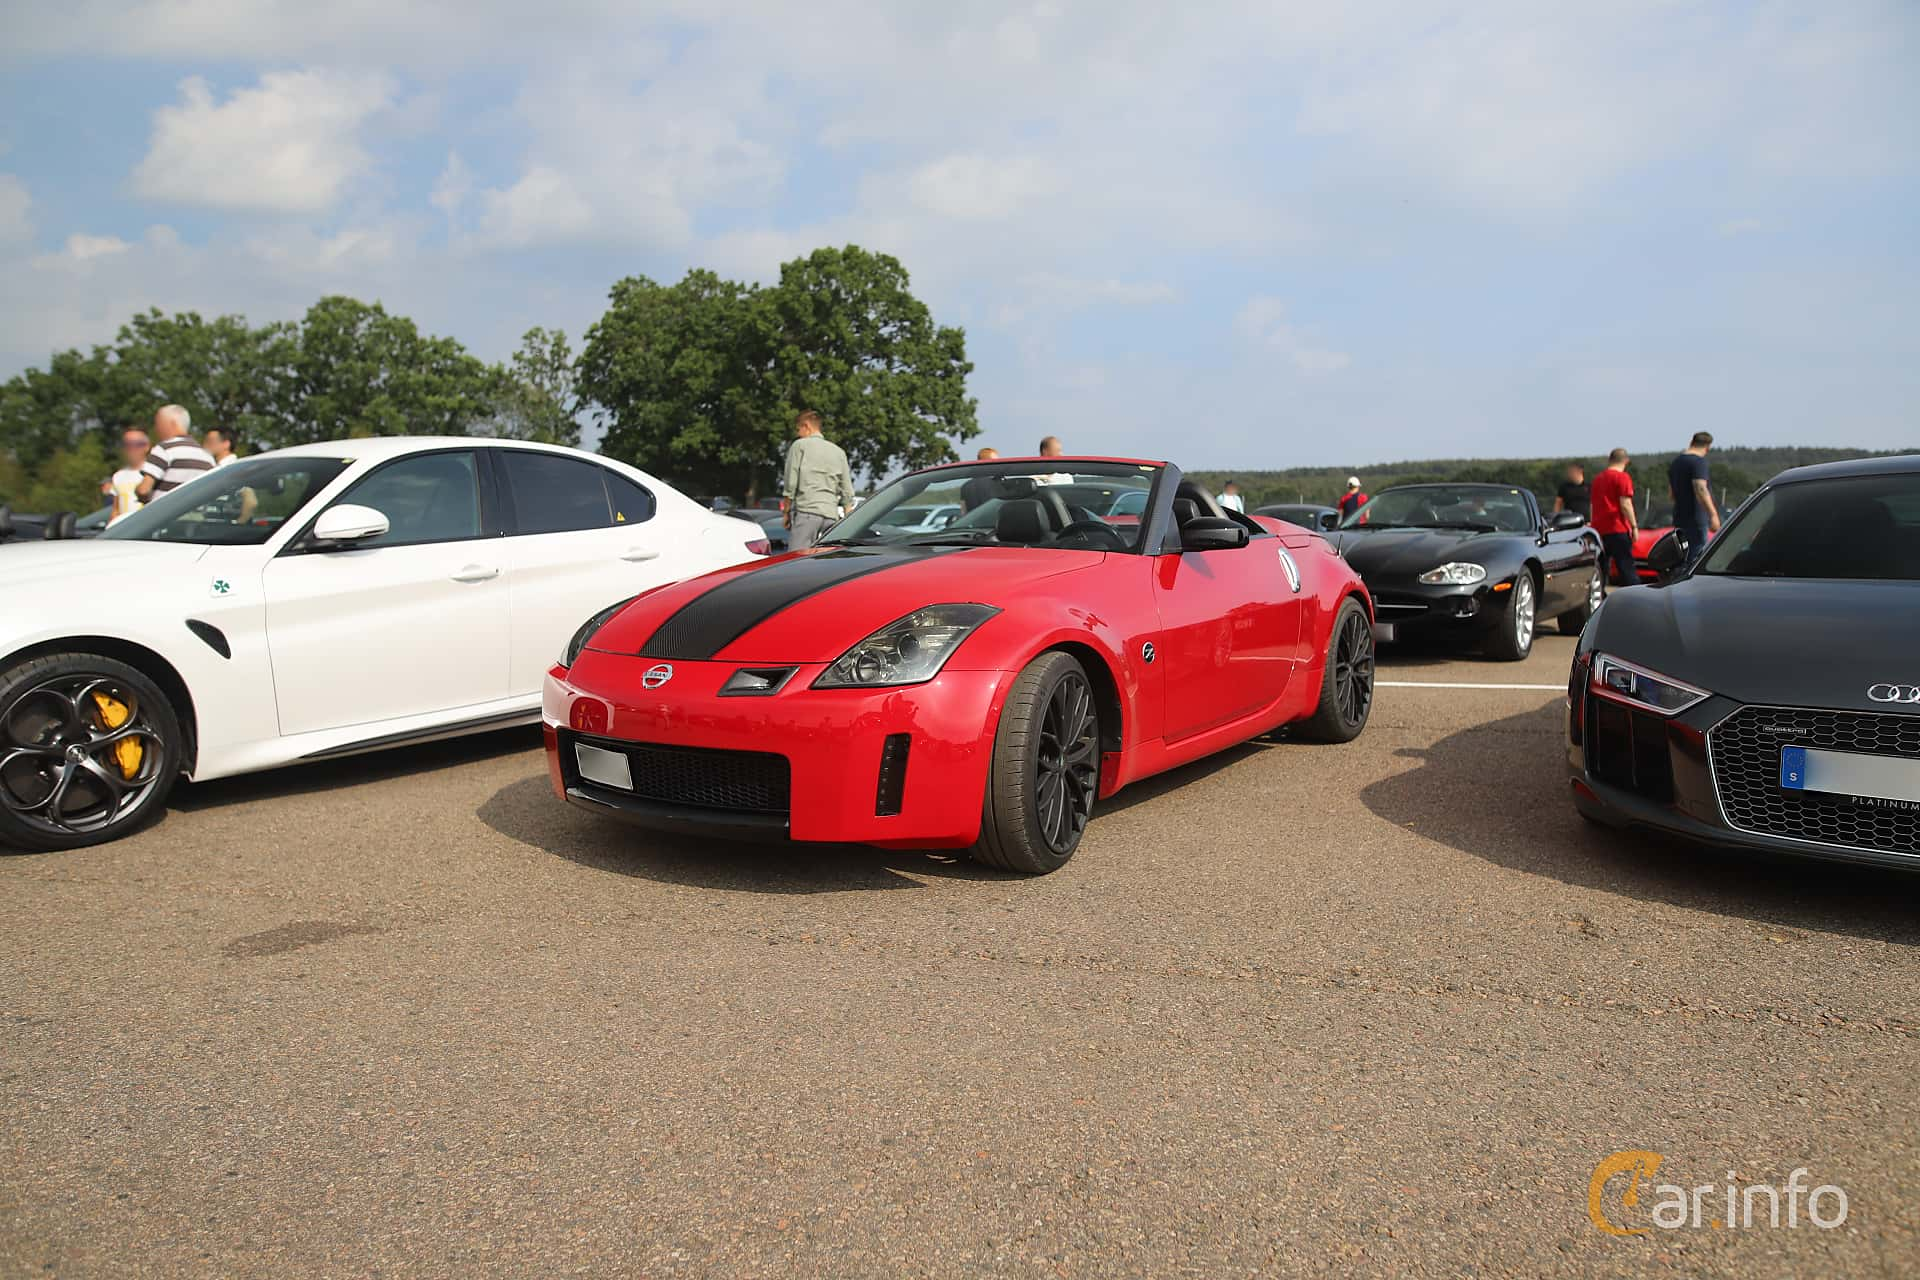 Nissan 350Z Roadster 3.5 V6  Manual, 280hp, 2005 at Autoropa Racing day Knutstorp 2019